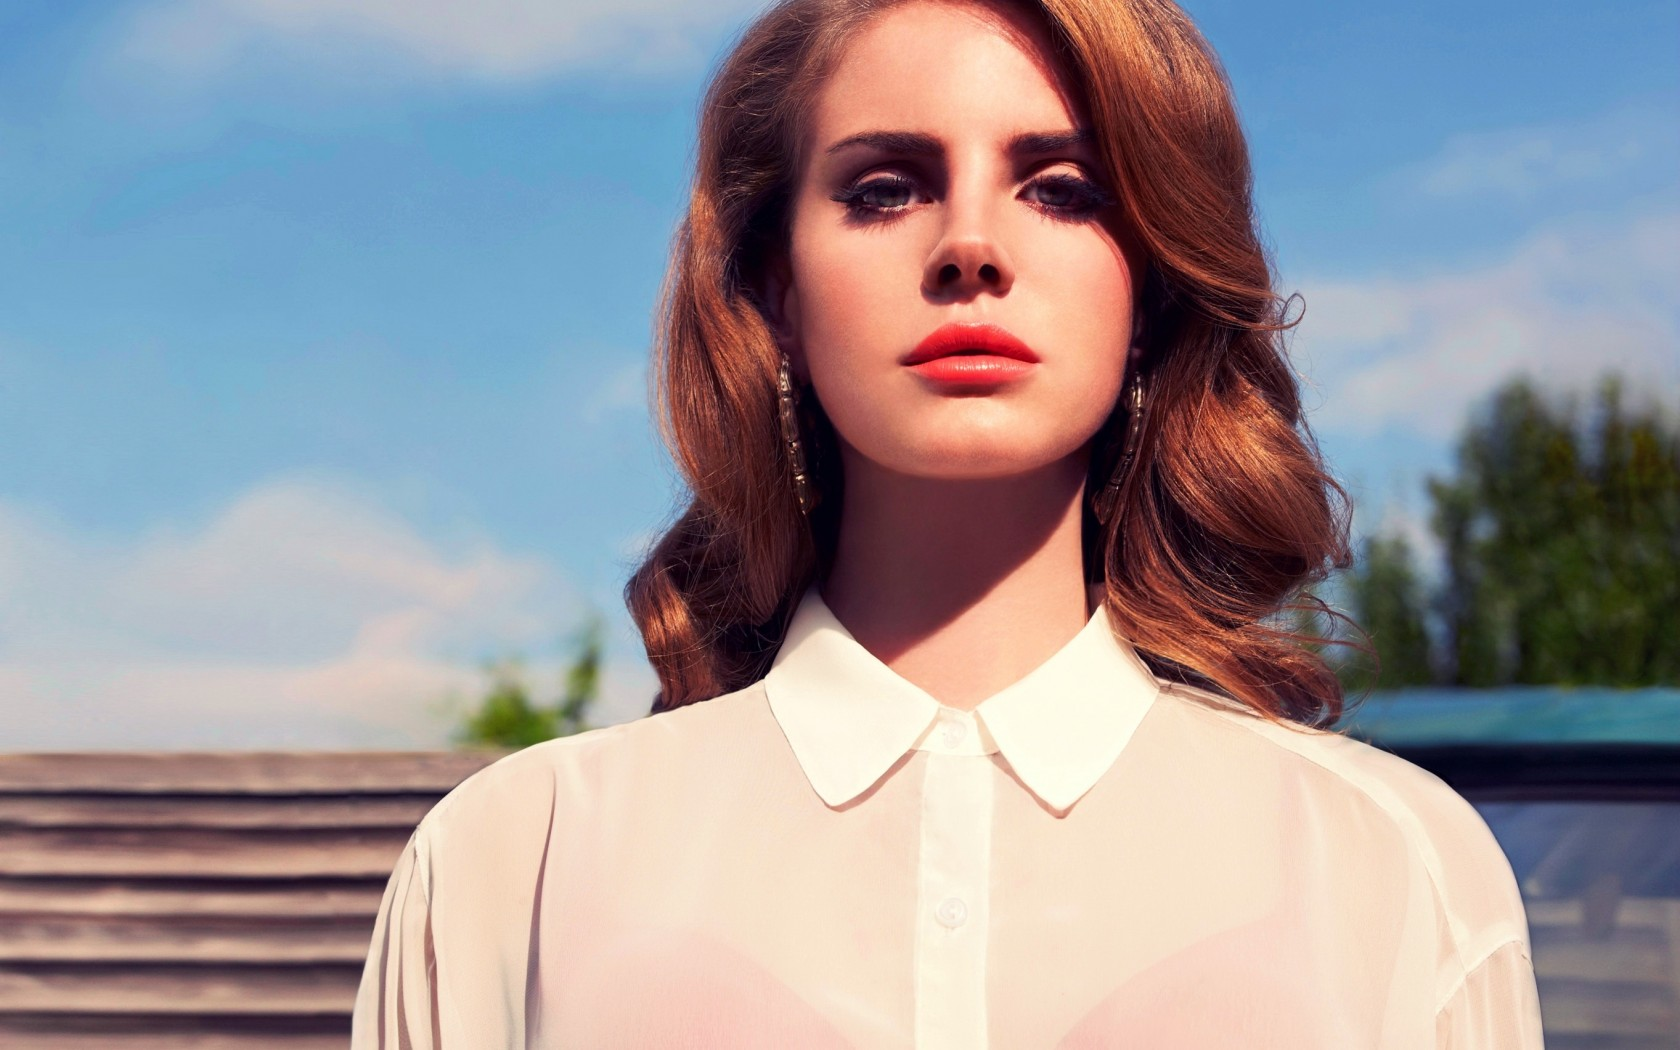 Lana Del Rey Wallpapers 5R944W2 024 Mb   4USkY 1680x1050